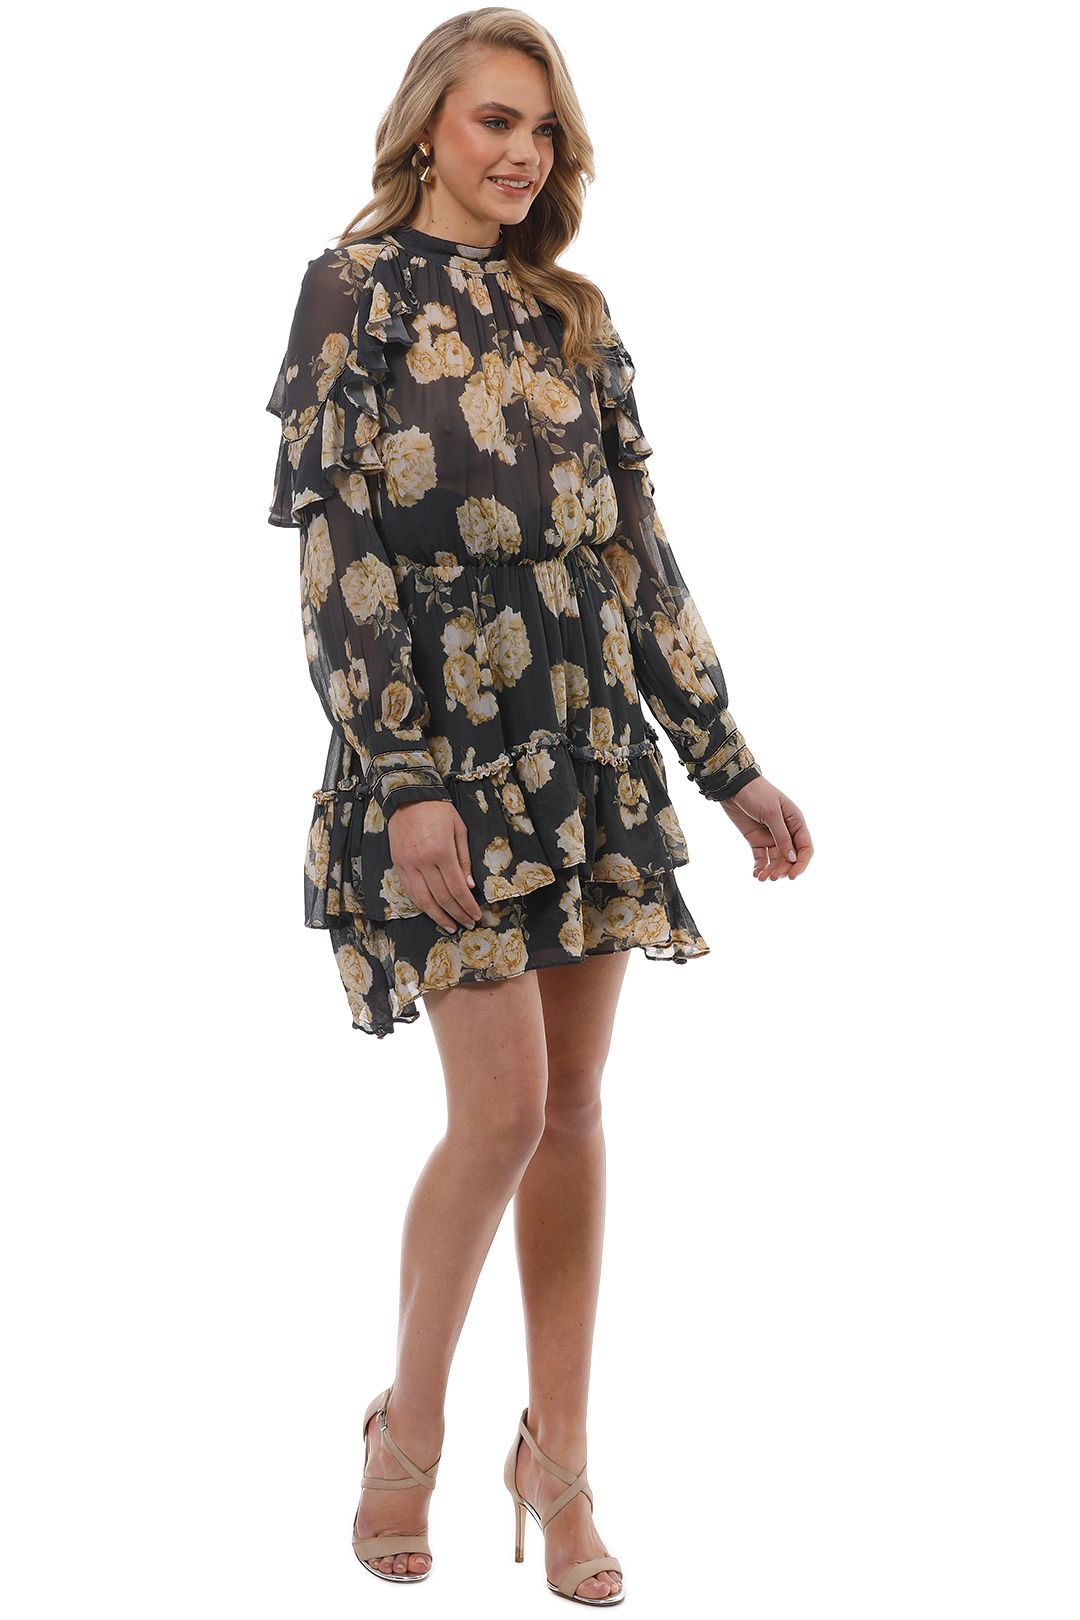 Talulah - In The Mix Mini Dress - Yellow Floral - Side